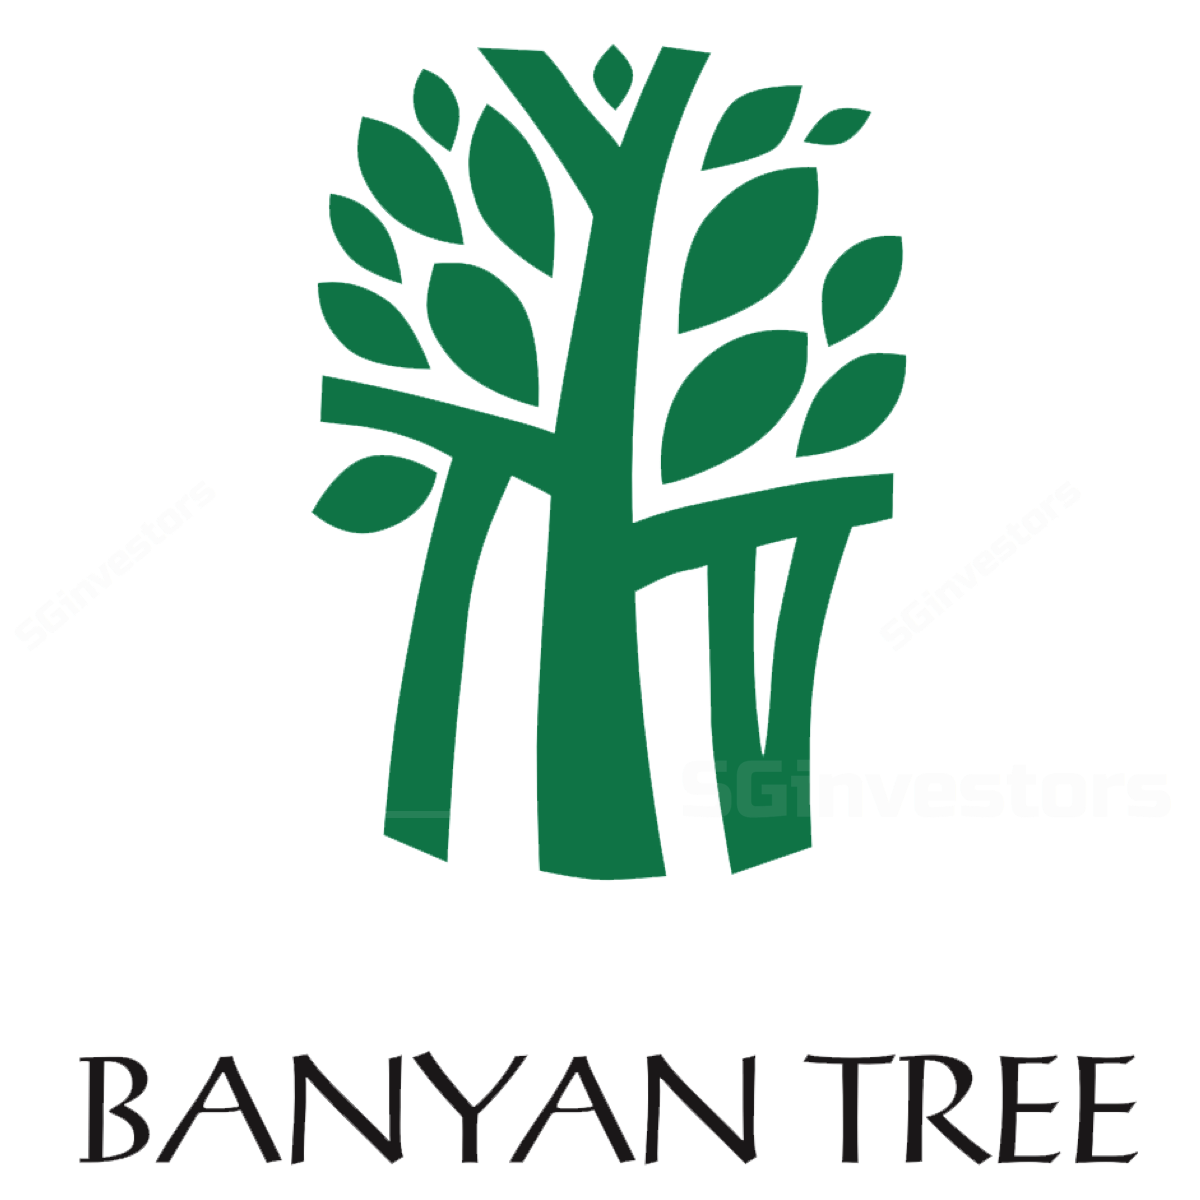 Banyan Tree Holdings (BTH SP) - UOB Kay Hian 2018-05-16: 1q18 Spectacular Results, Positioned For Growth